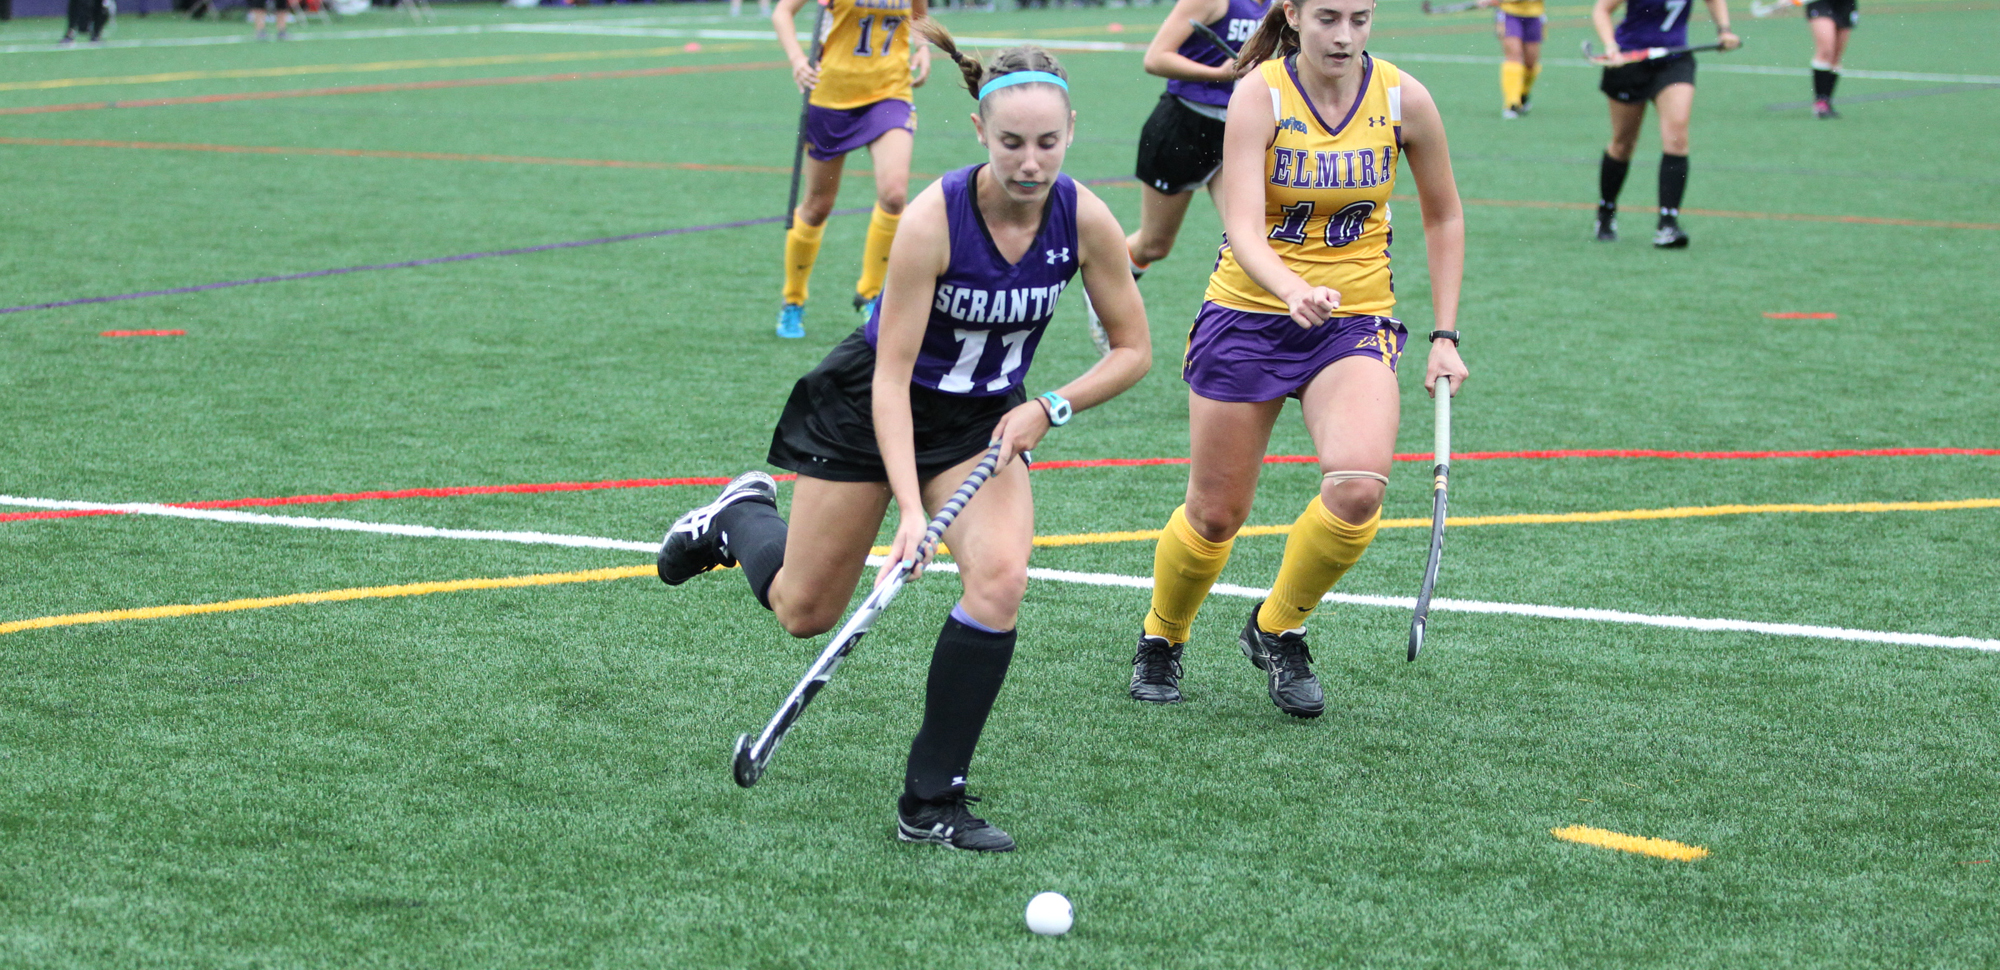 Megan Gallagher has been named The University of Scranton Athlete of the Week.